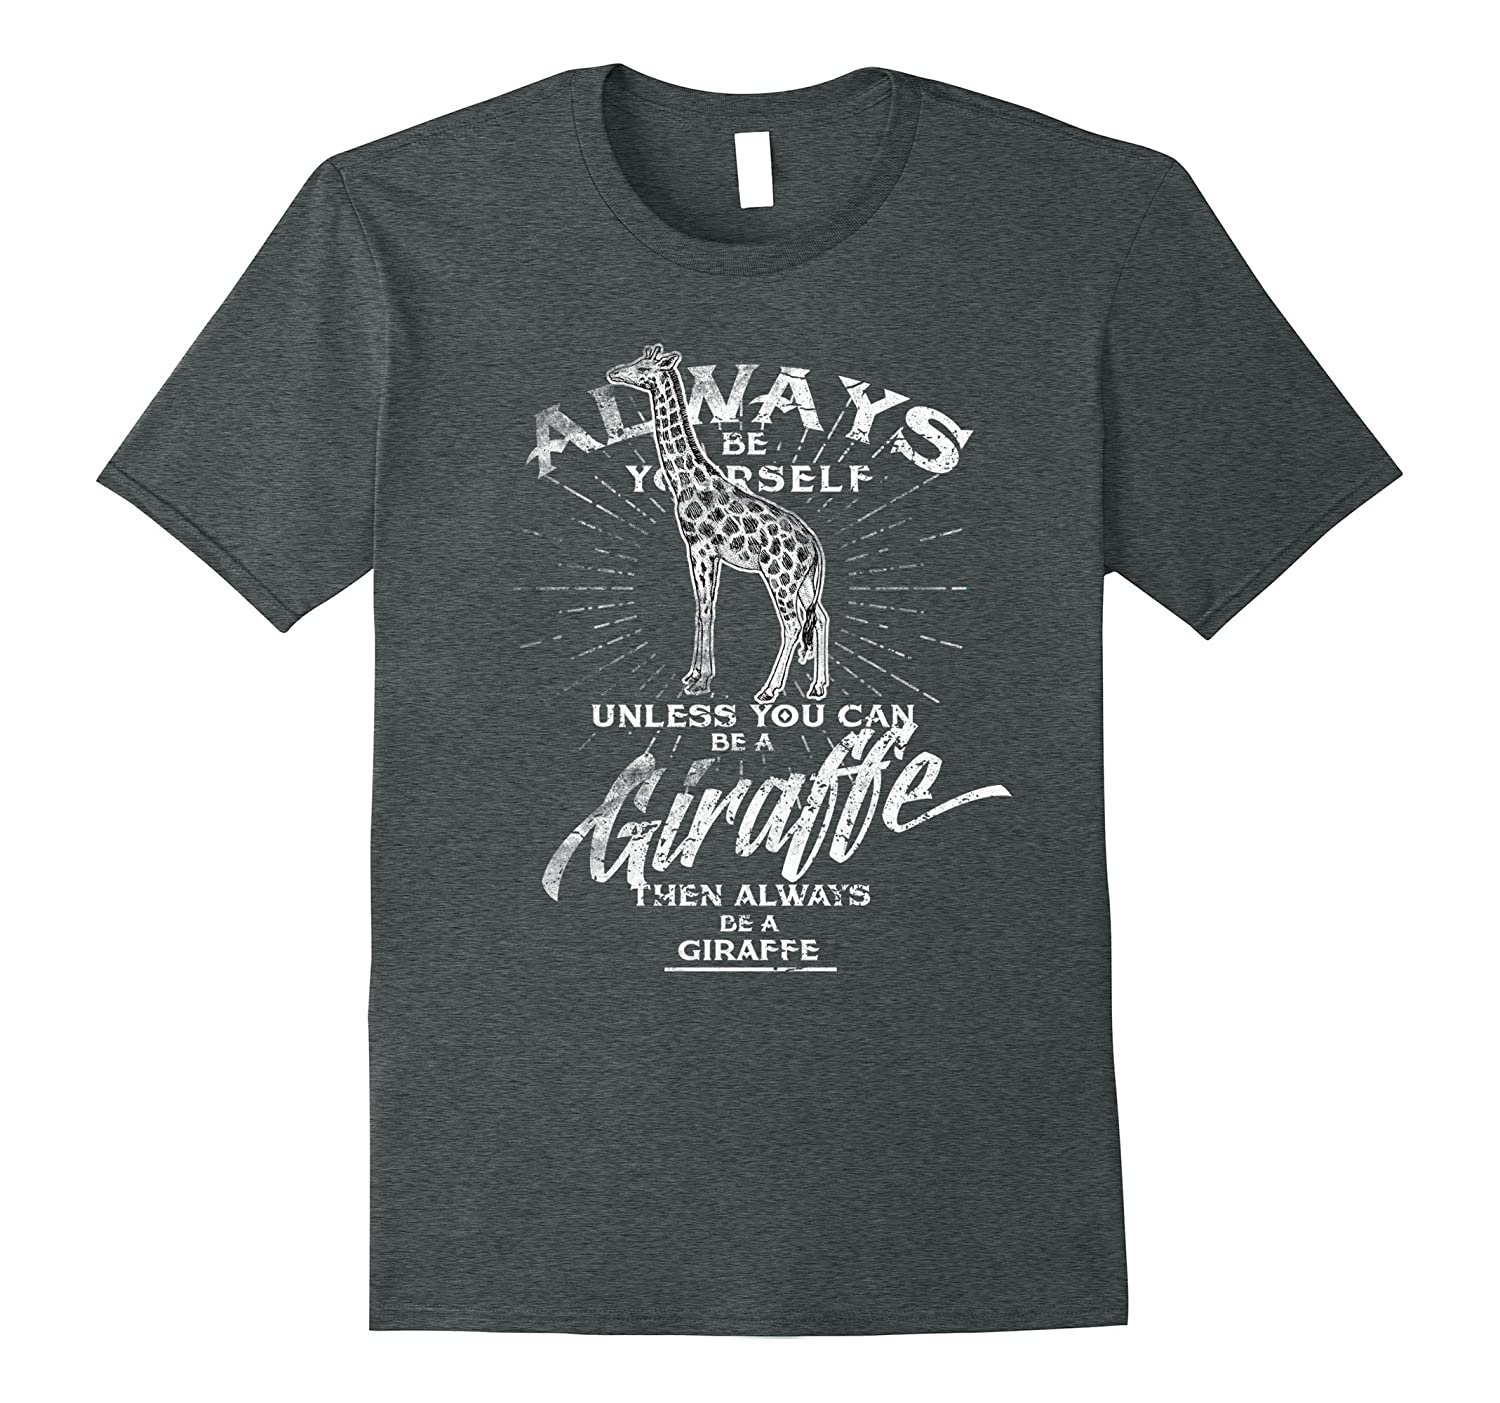 Always Be Yourself Shirt Be A Giraffe Funny T-Shirt Gift-FL